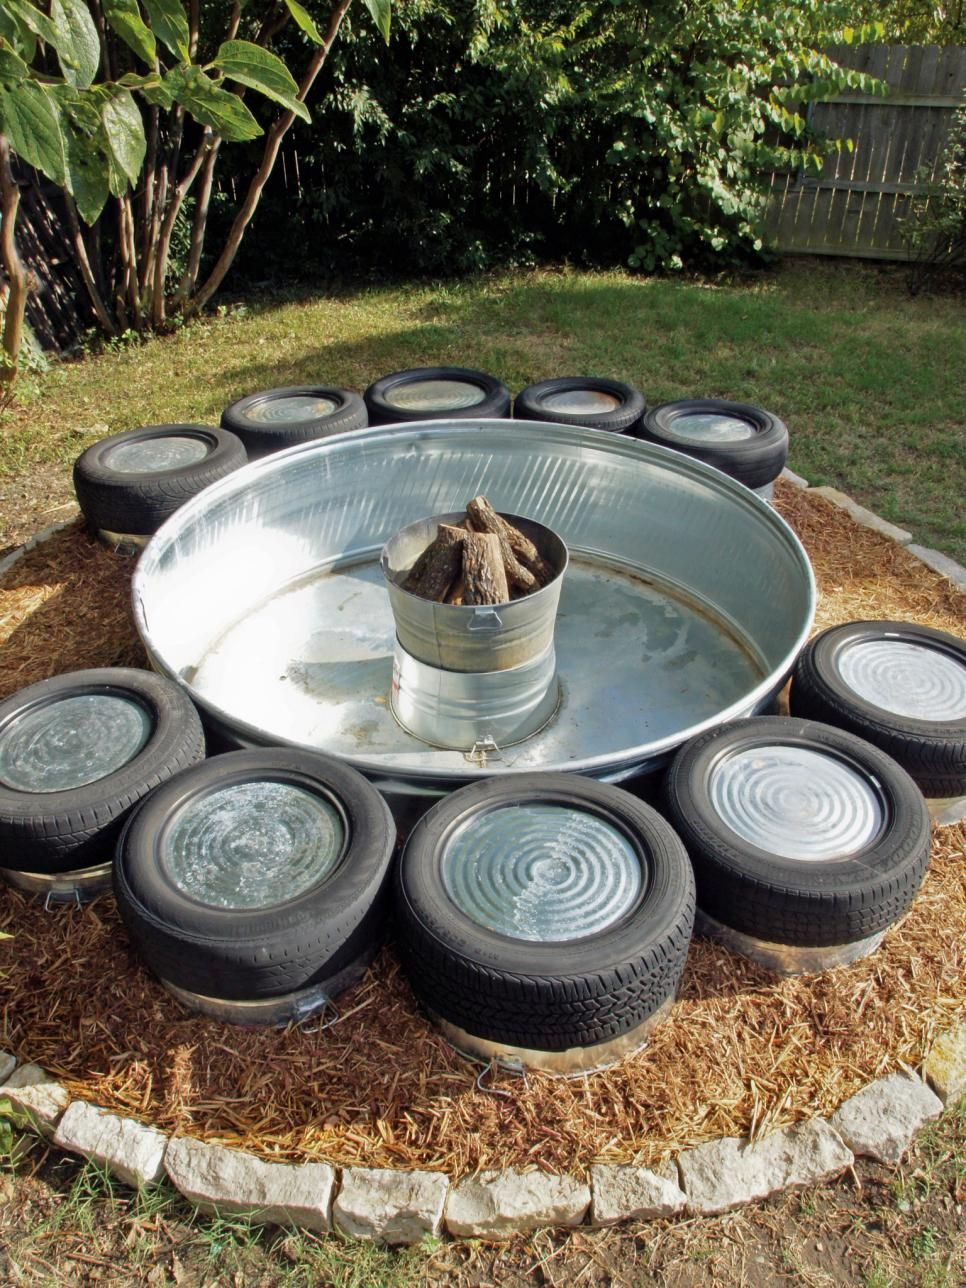 Use a feeding trough to create a cool, industrialstyle